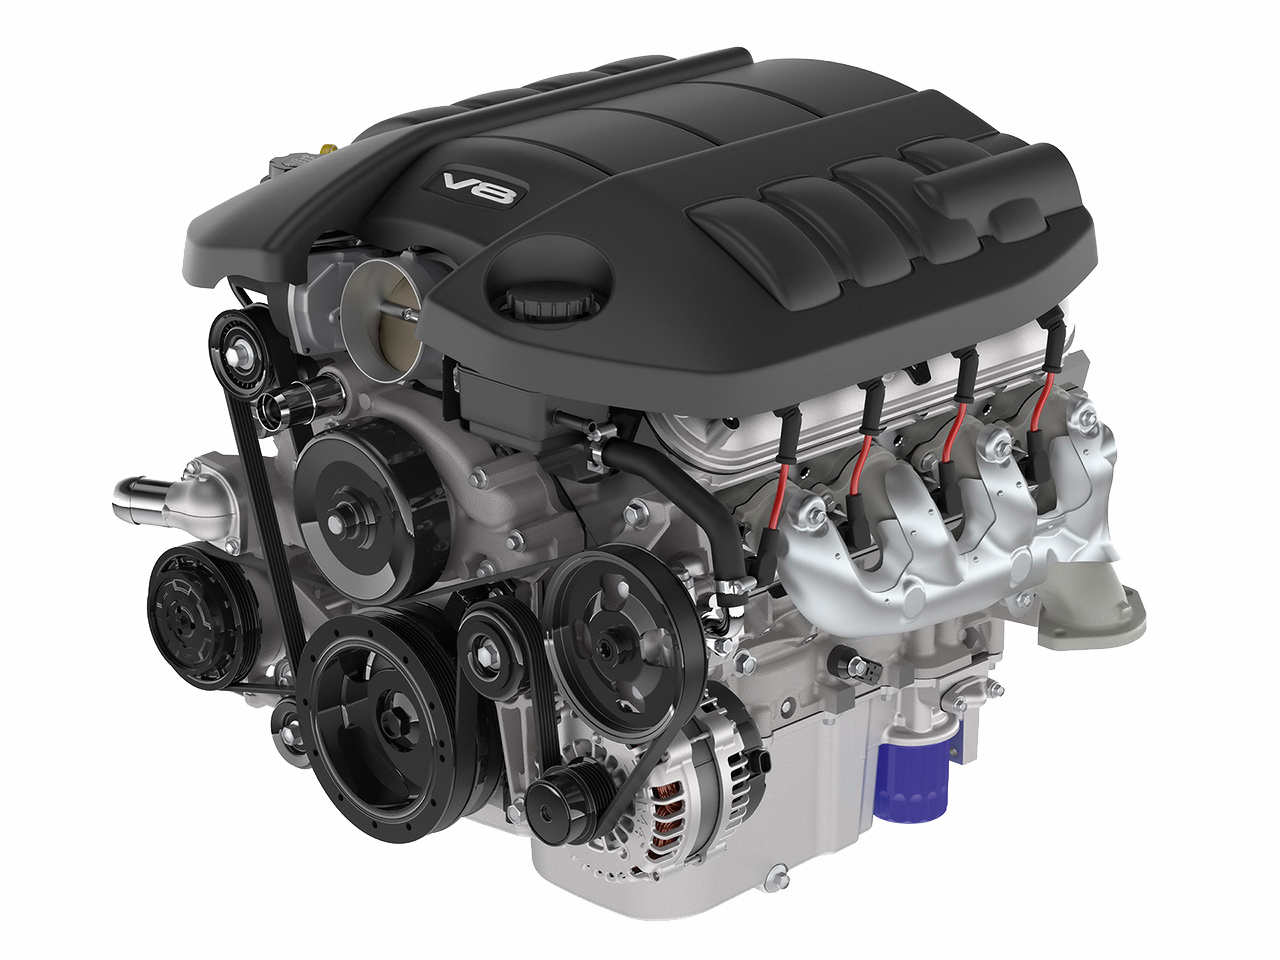 LS V8 conversions: is the grass really greener? We talk to the